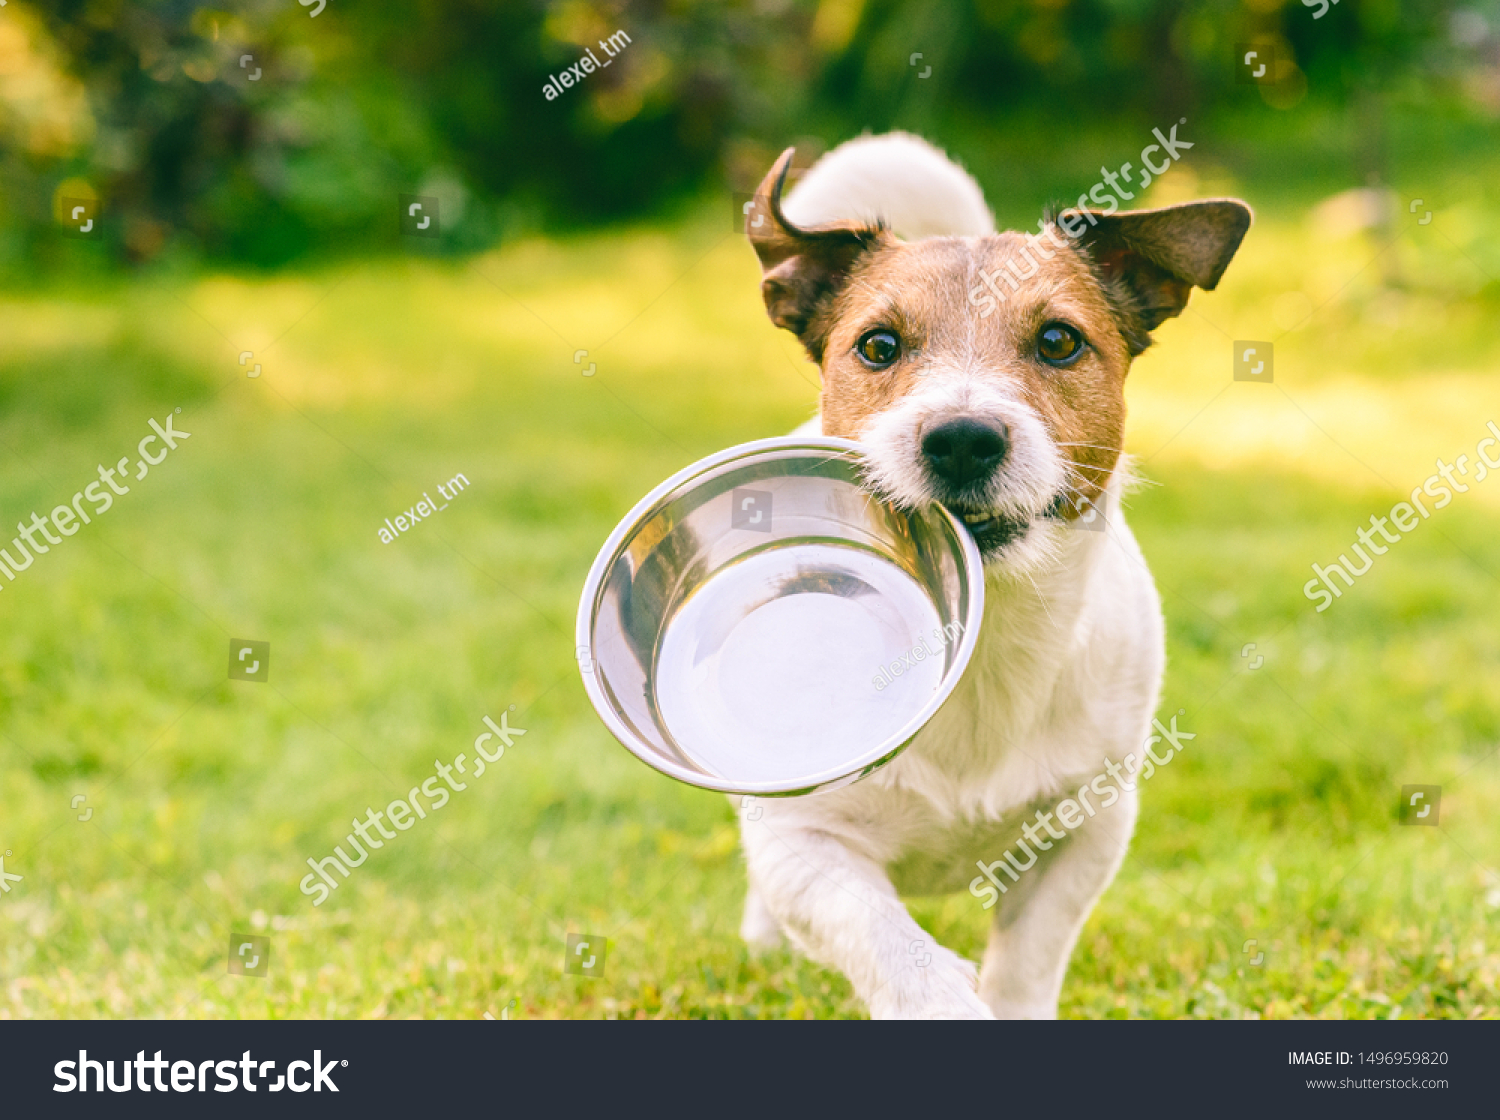 Hungry or thirsty dog fetches metal bowl to get feed or water #1496959820